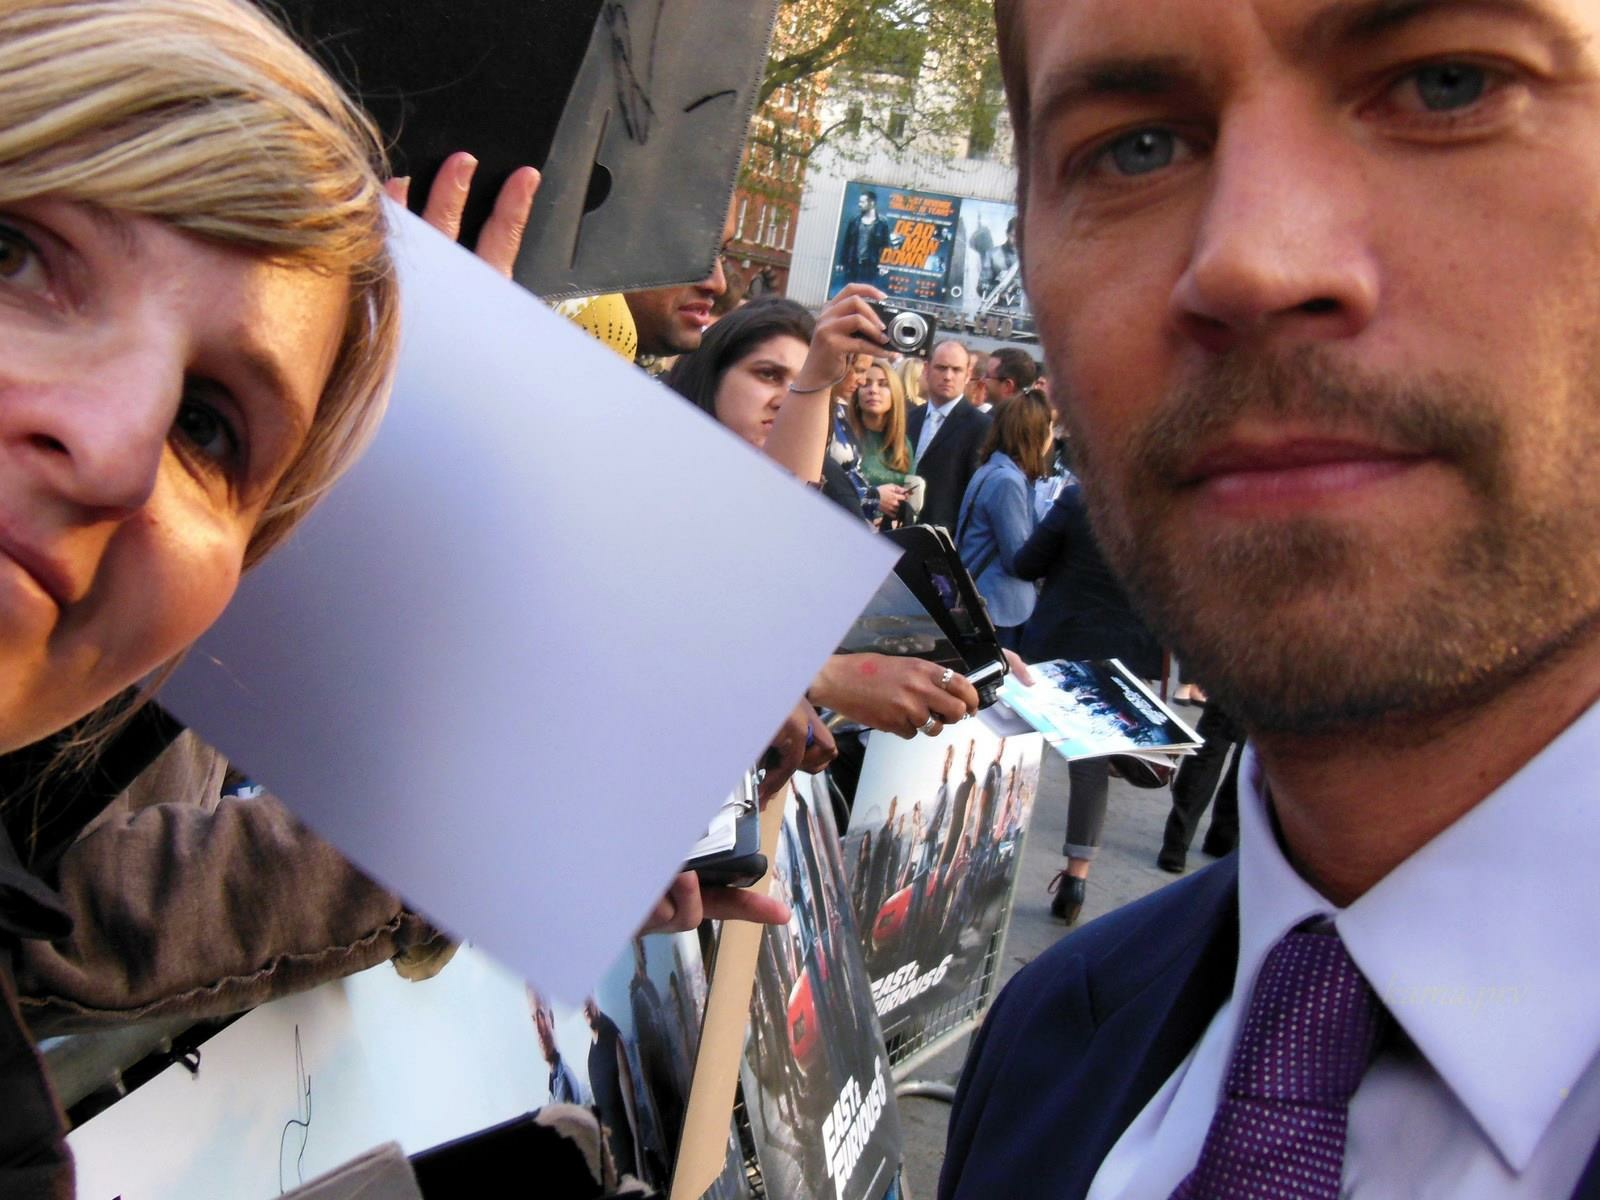 Paul Walker Fast and Furious 6 Premiere